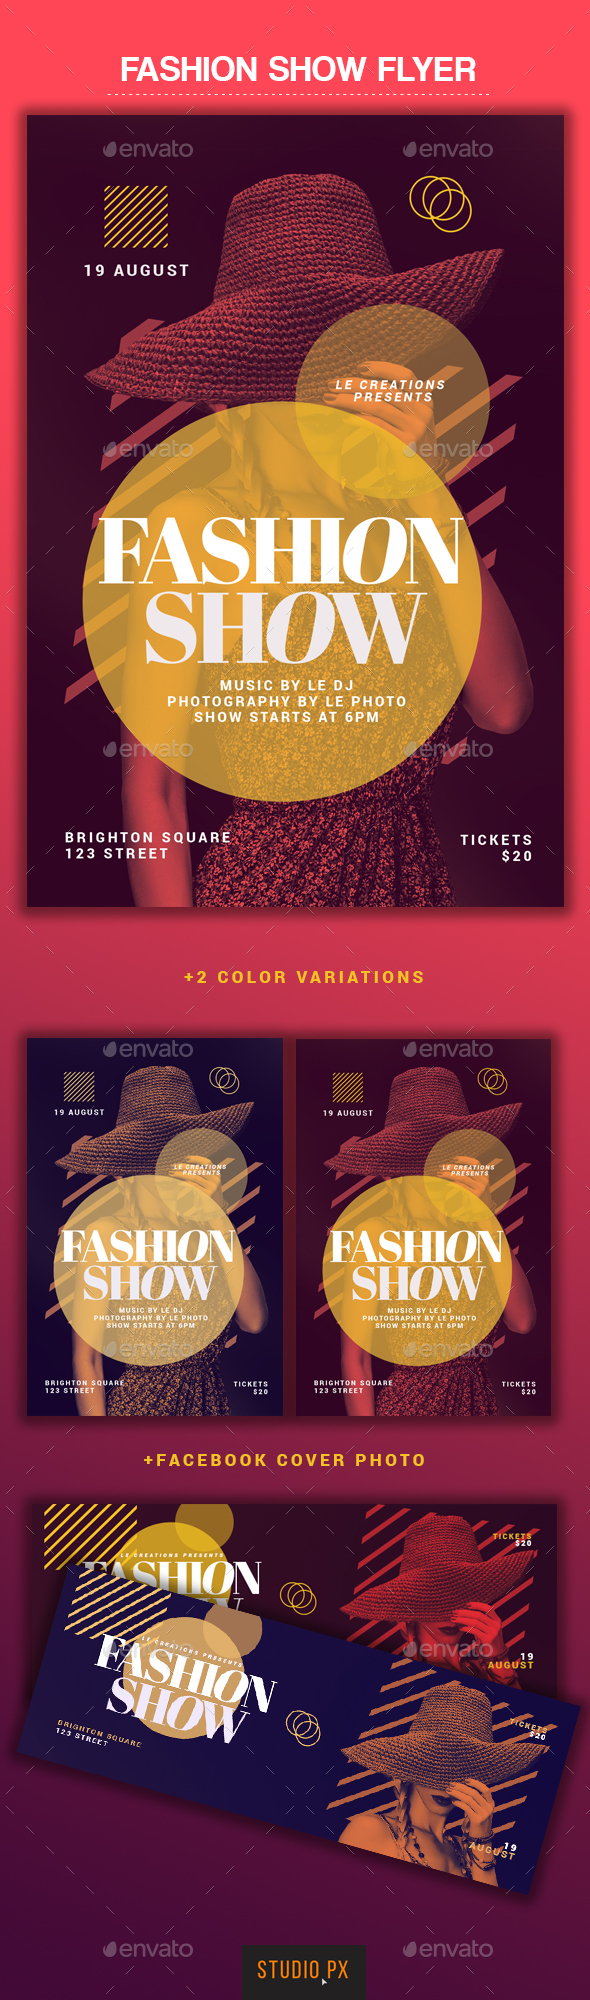 Fashion Show Flyer - Flyers Print Templates